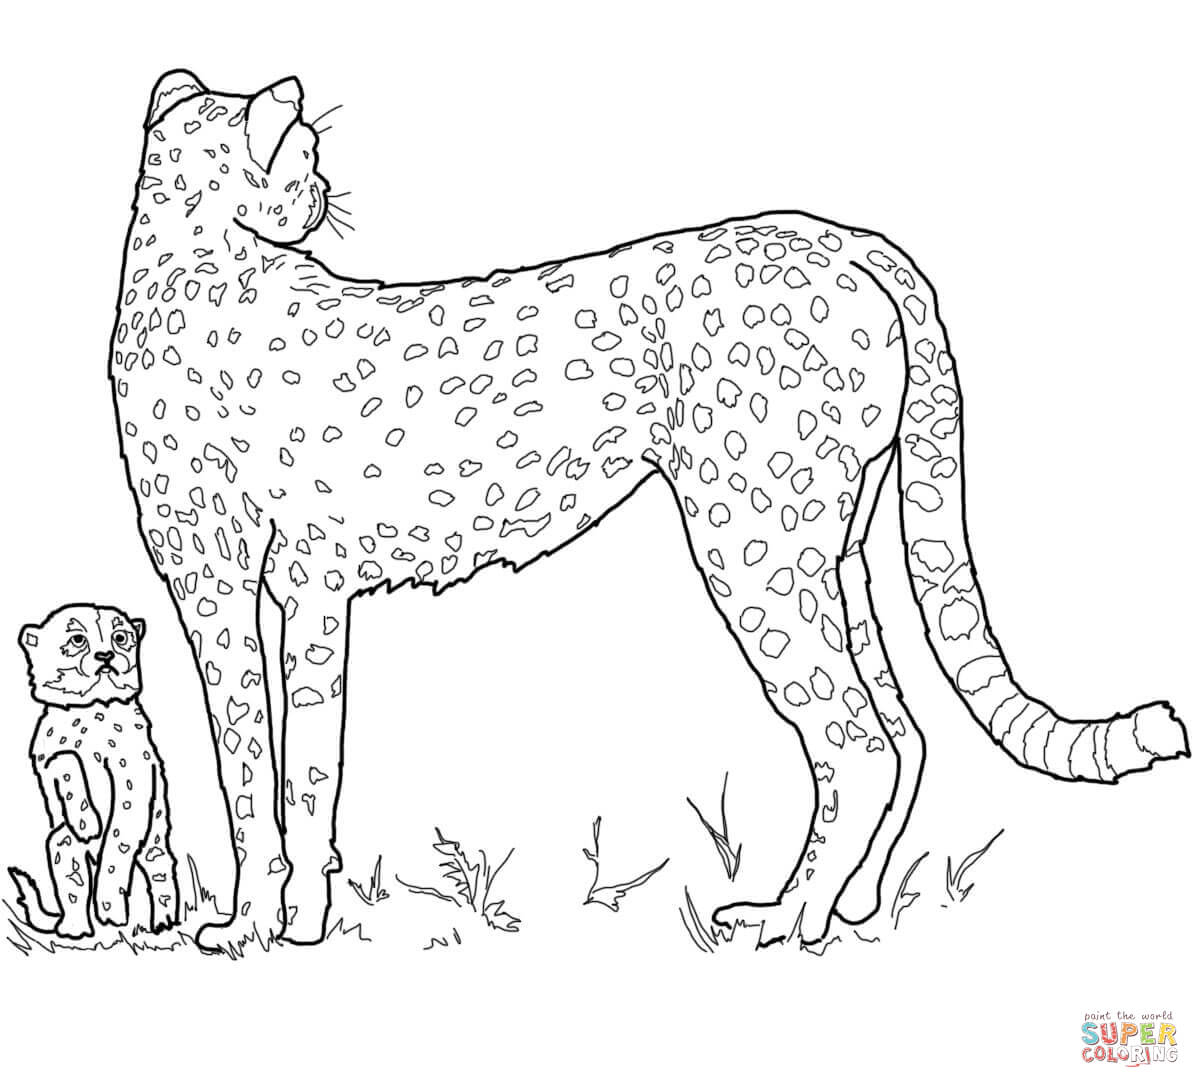 Baby Cheetah And Mother Coloring Page | Free Printable Coloring Pages - Free Printable Cheetah Pictures